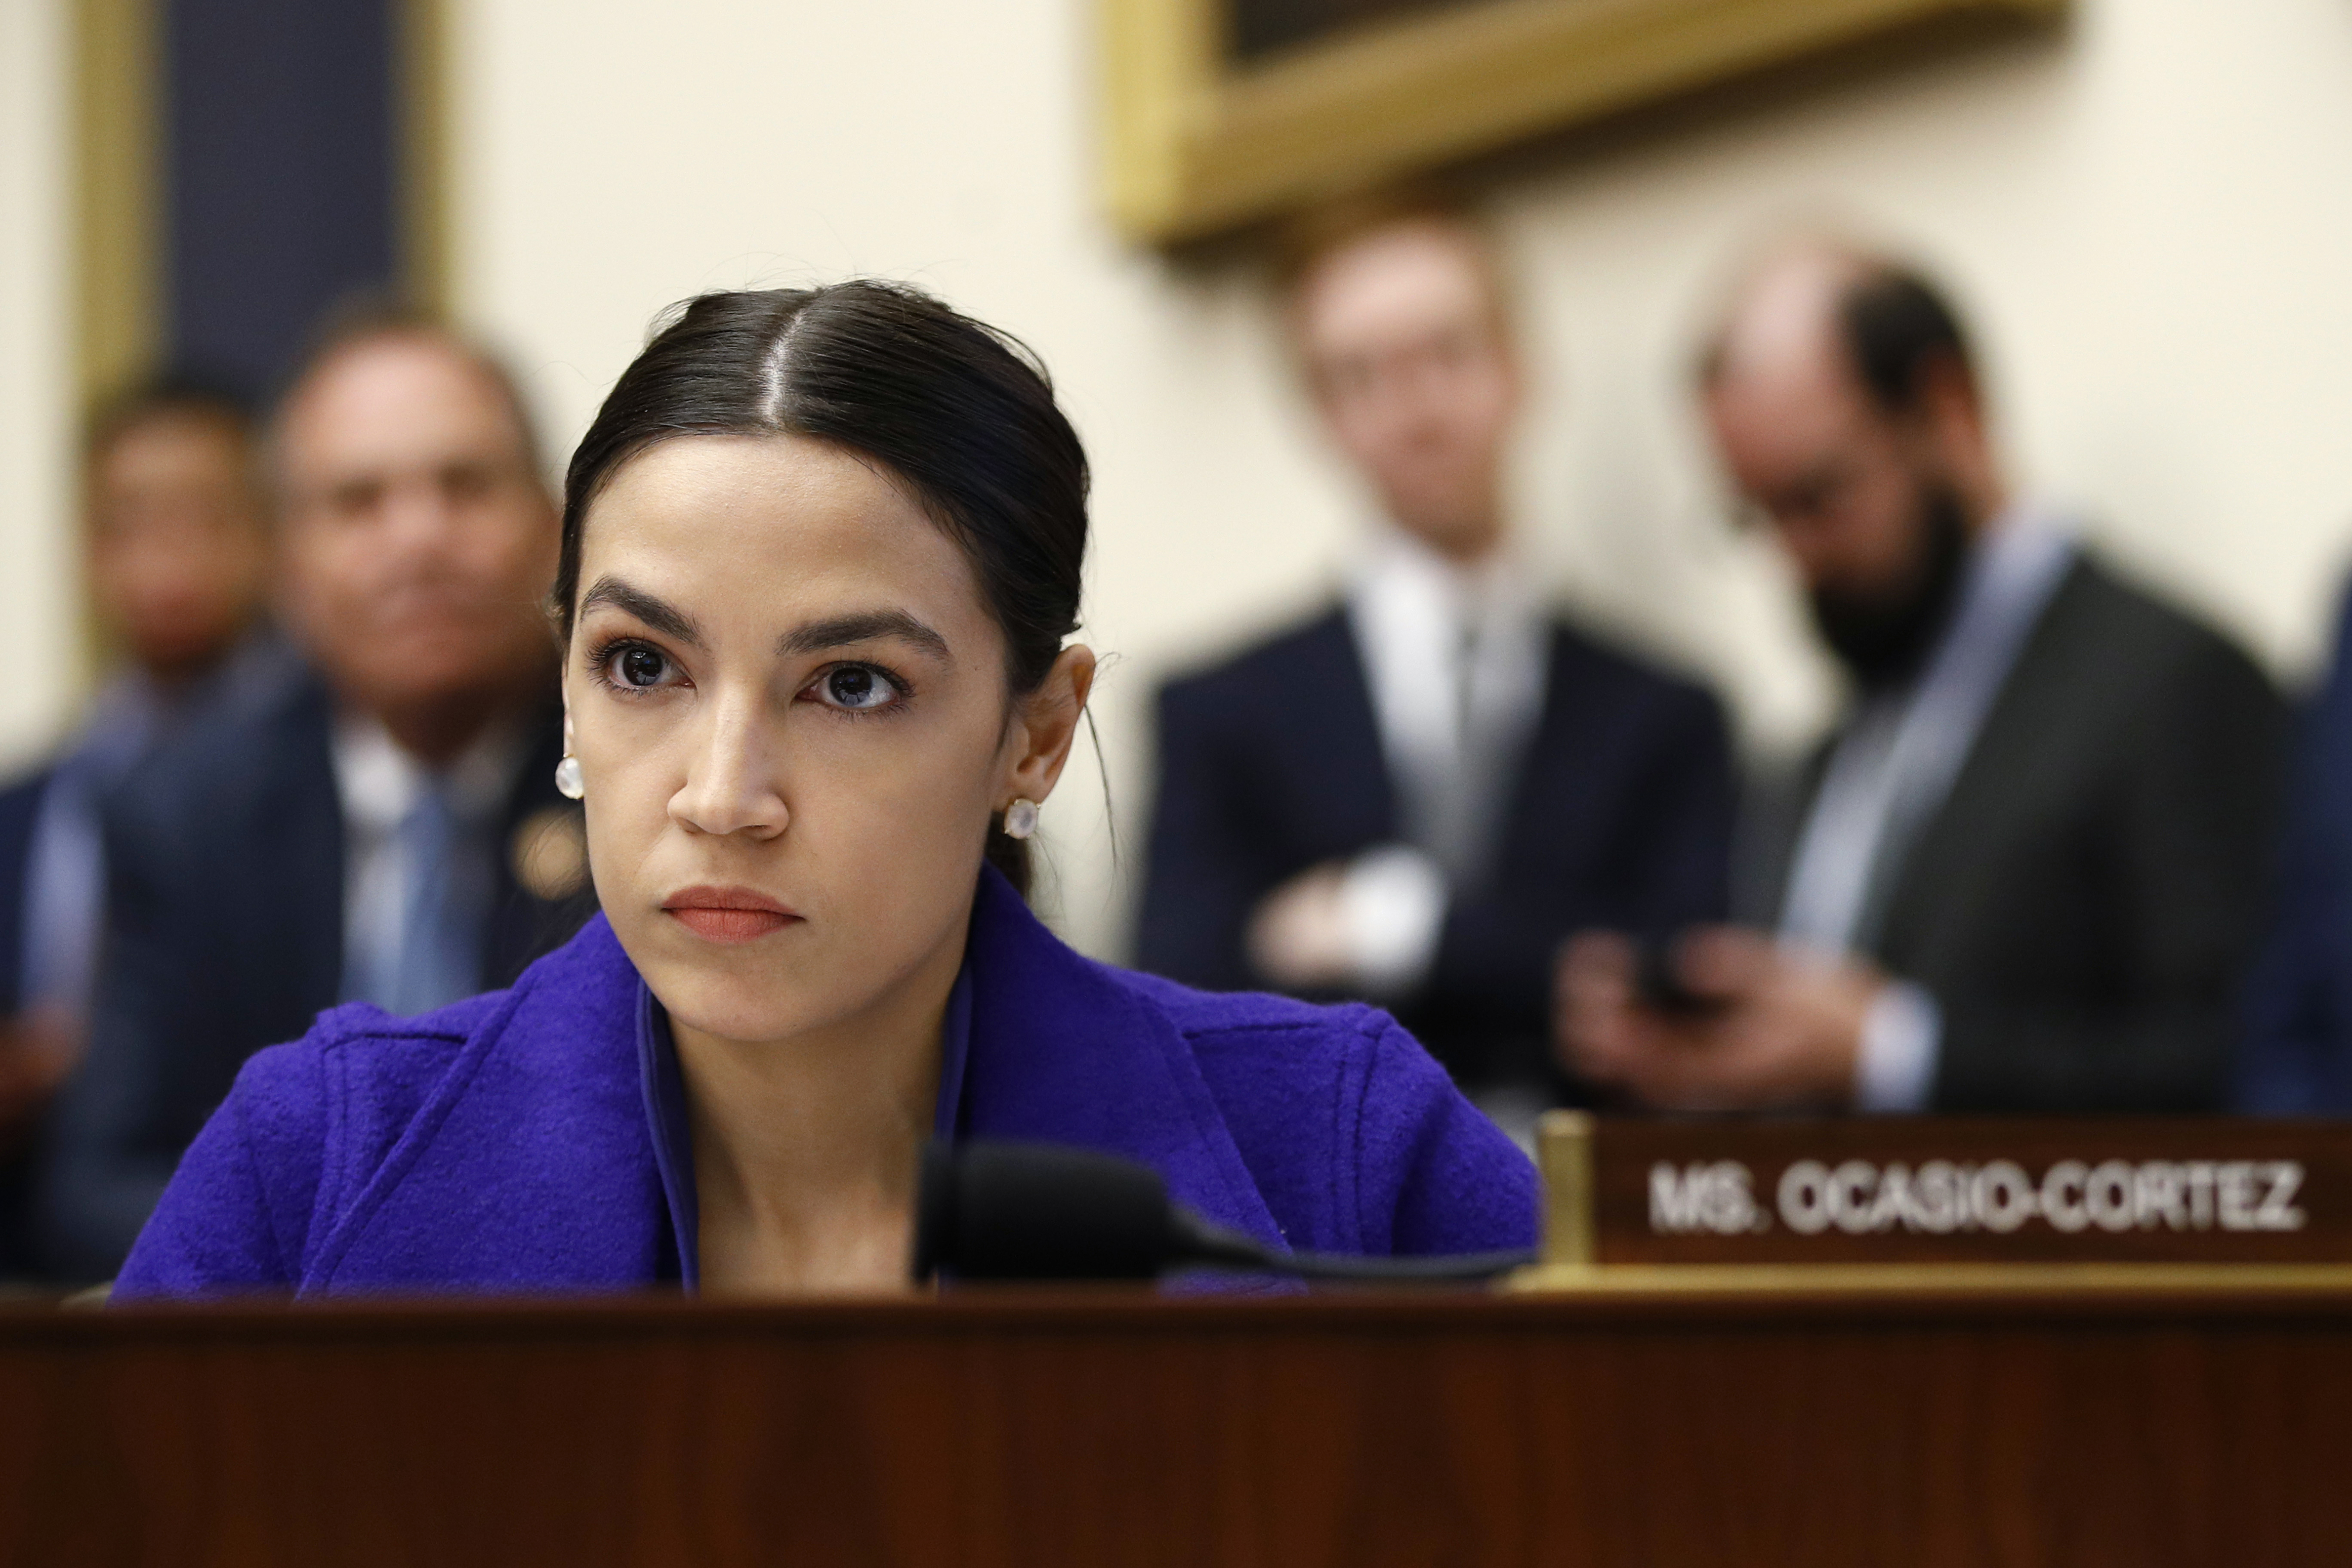 Westlake Legal Group 501a9196-AP19102561445126 Dozens of Dems vote 95 percent of time with AOC despite Pelosi's claim that bloc is 'like five people' Lukas Mikelionis fox-news/politics/house-of-representatives/democrats fox-news/person/nancy-pelosi fox-news/person/alexandria-ocasio-cortez fox news fnc/politics fnc article 9b7670c6-d938-52b2-9feb-ea6bdc256dd7